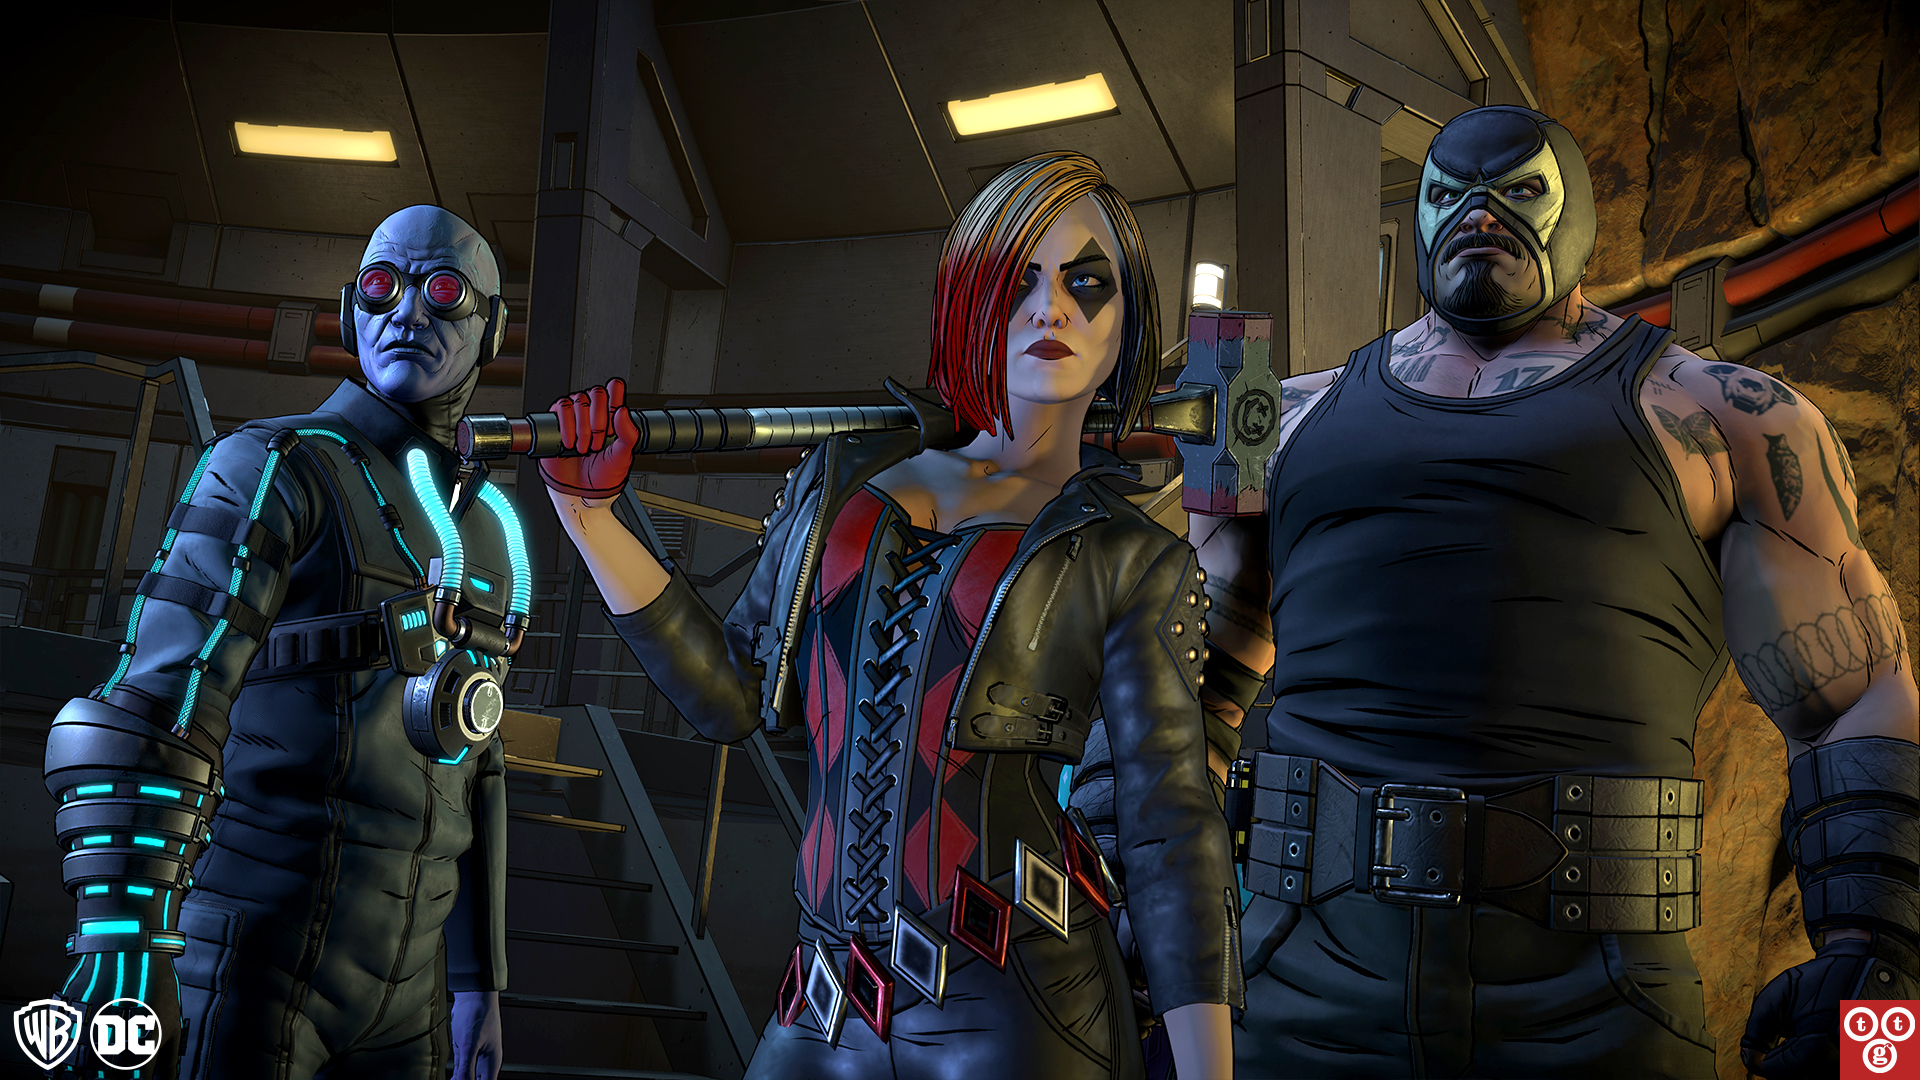 Mr. Freeze, Harley Quinn and Bane